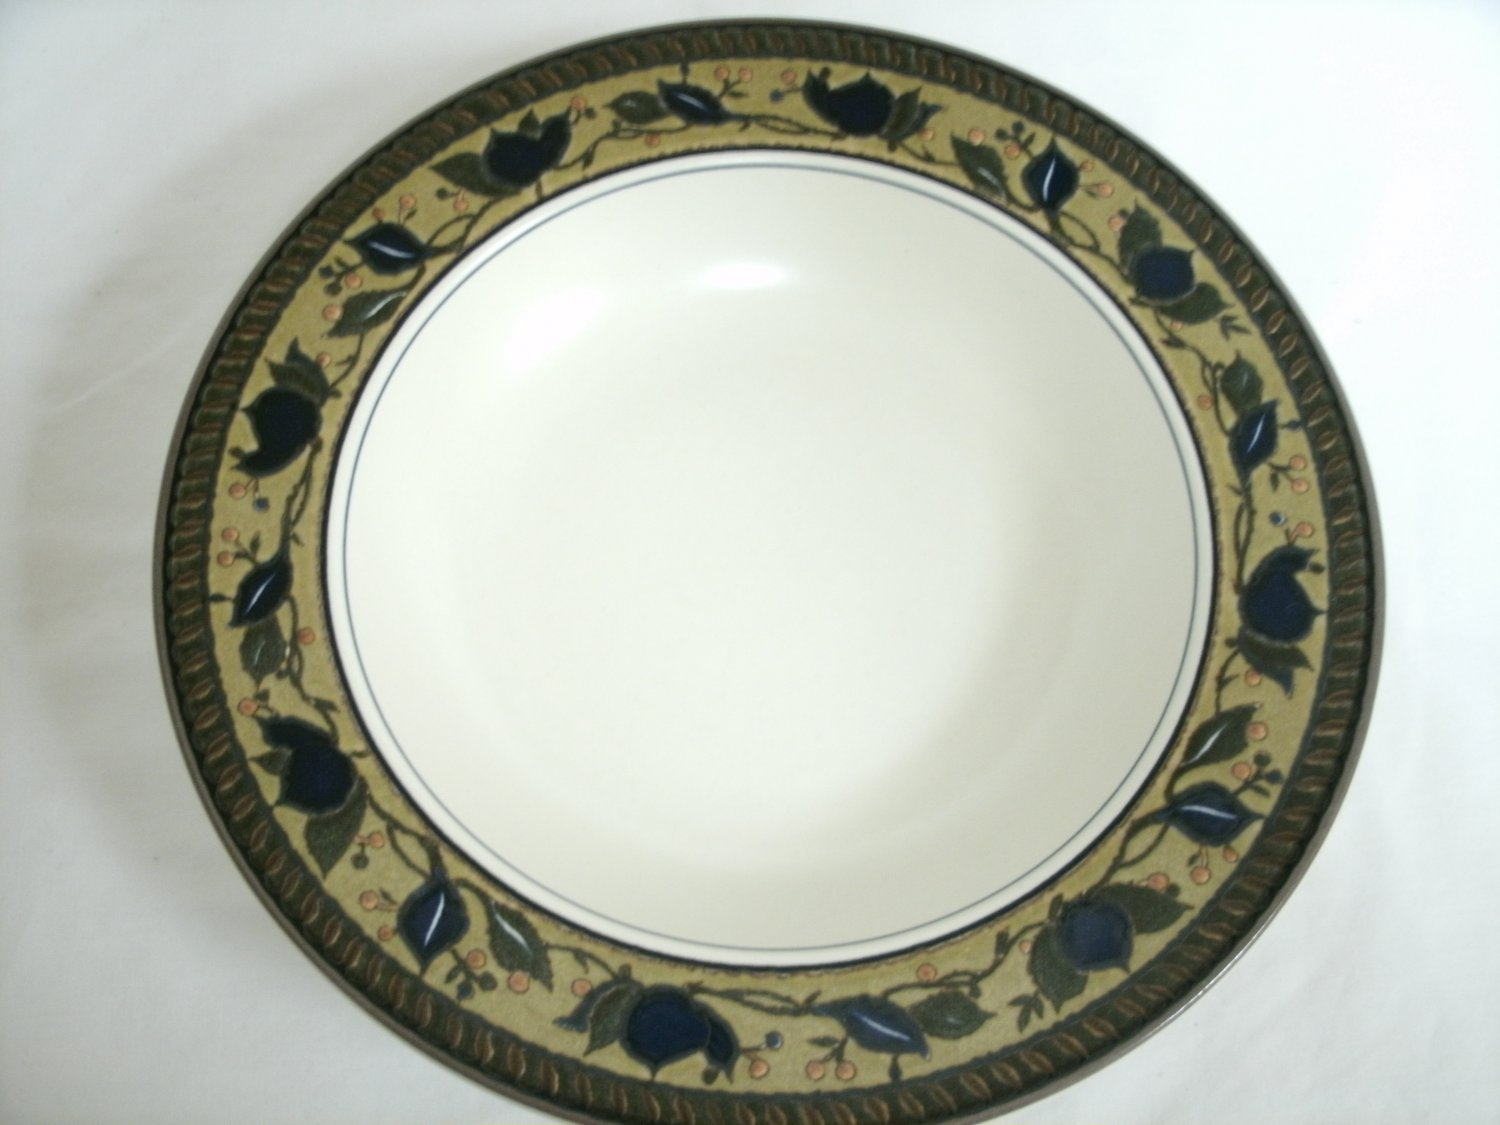 Mikasa Intaglio Arabella Large Rim Soup Bowl Beige and Blue Stoneware With Leaf Design 9 3/8 Inches